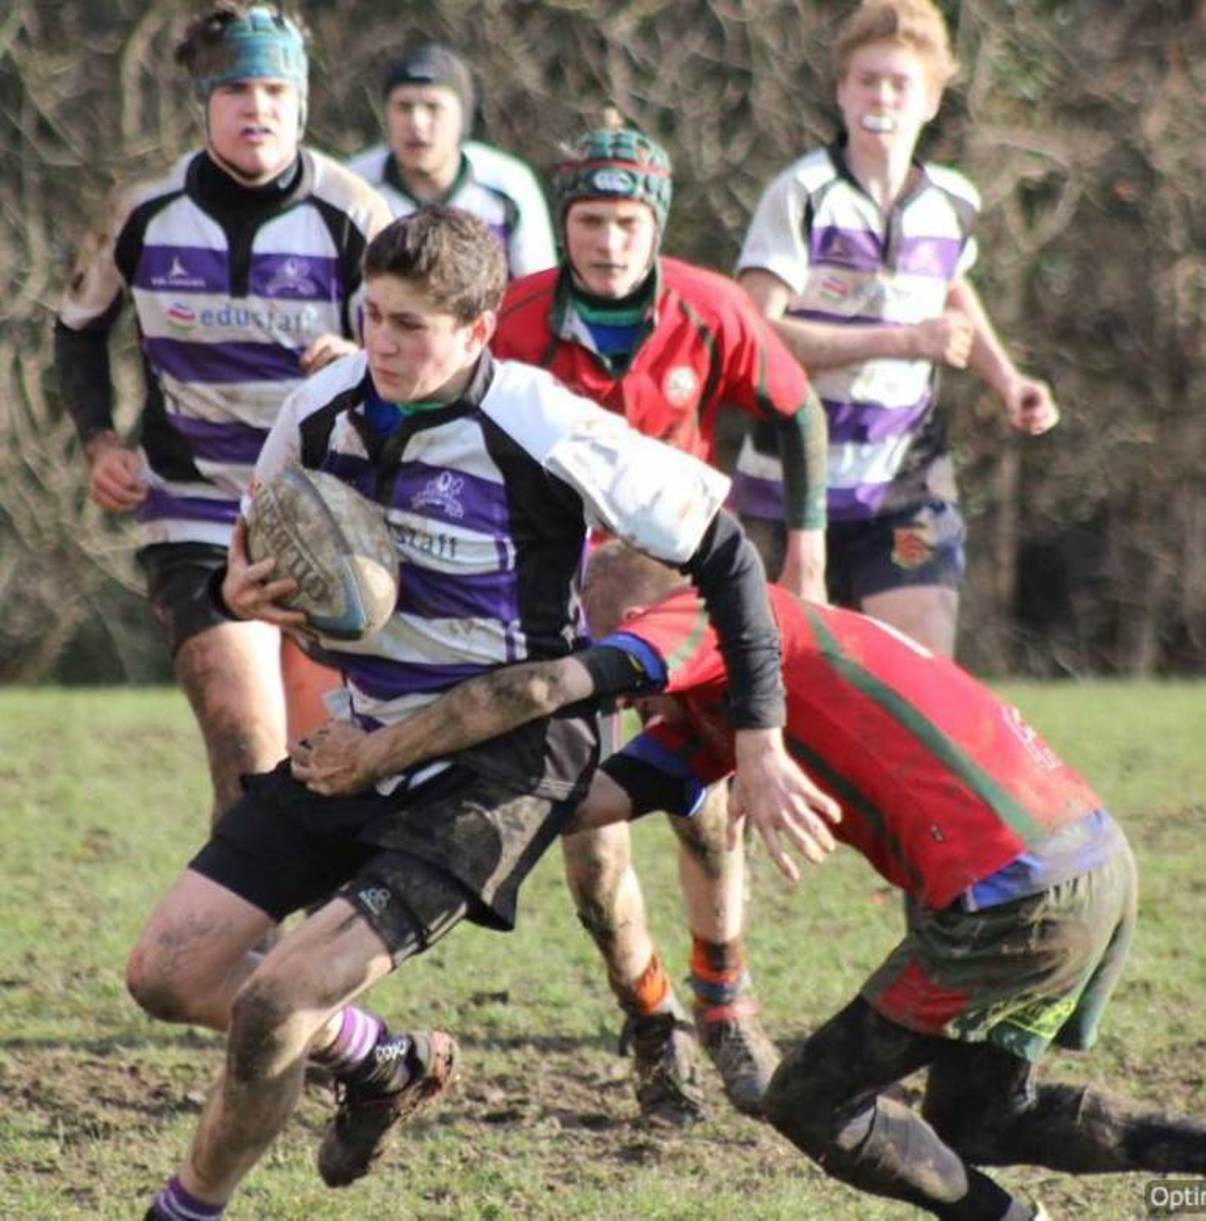 Woodford Under-15s complete double over Harlow